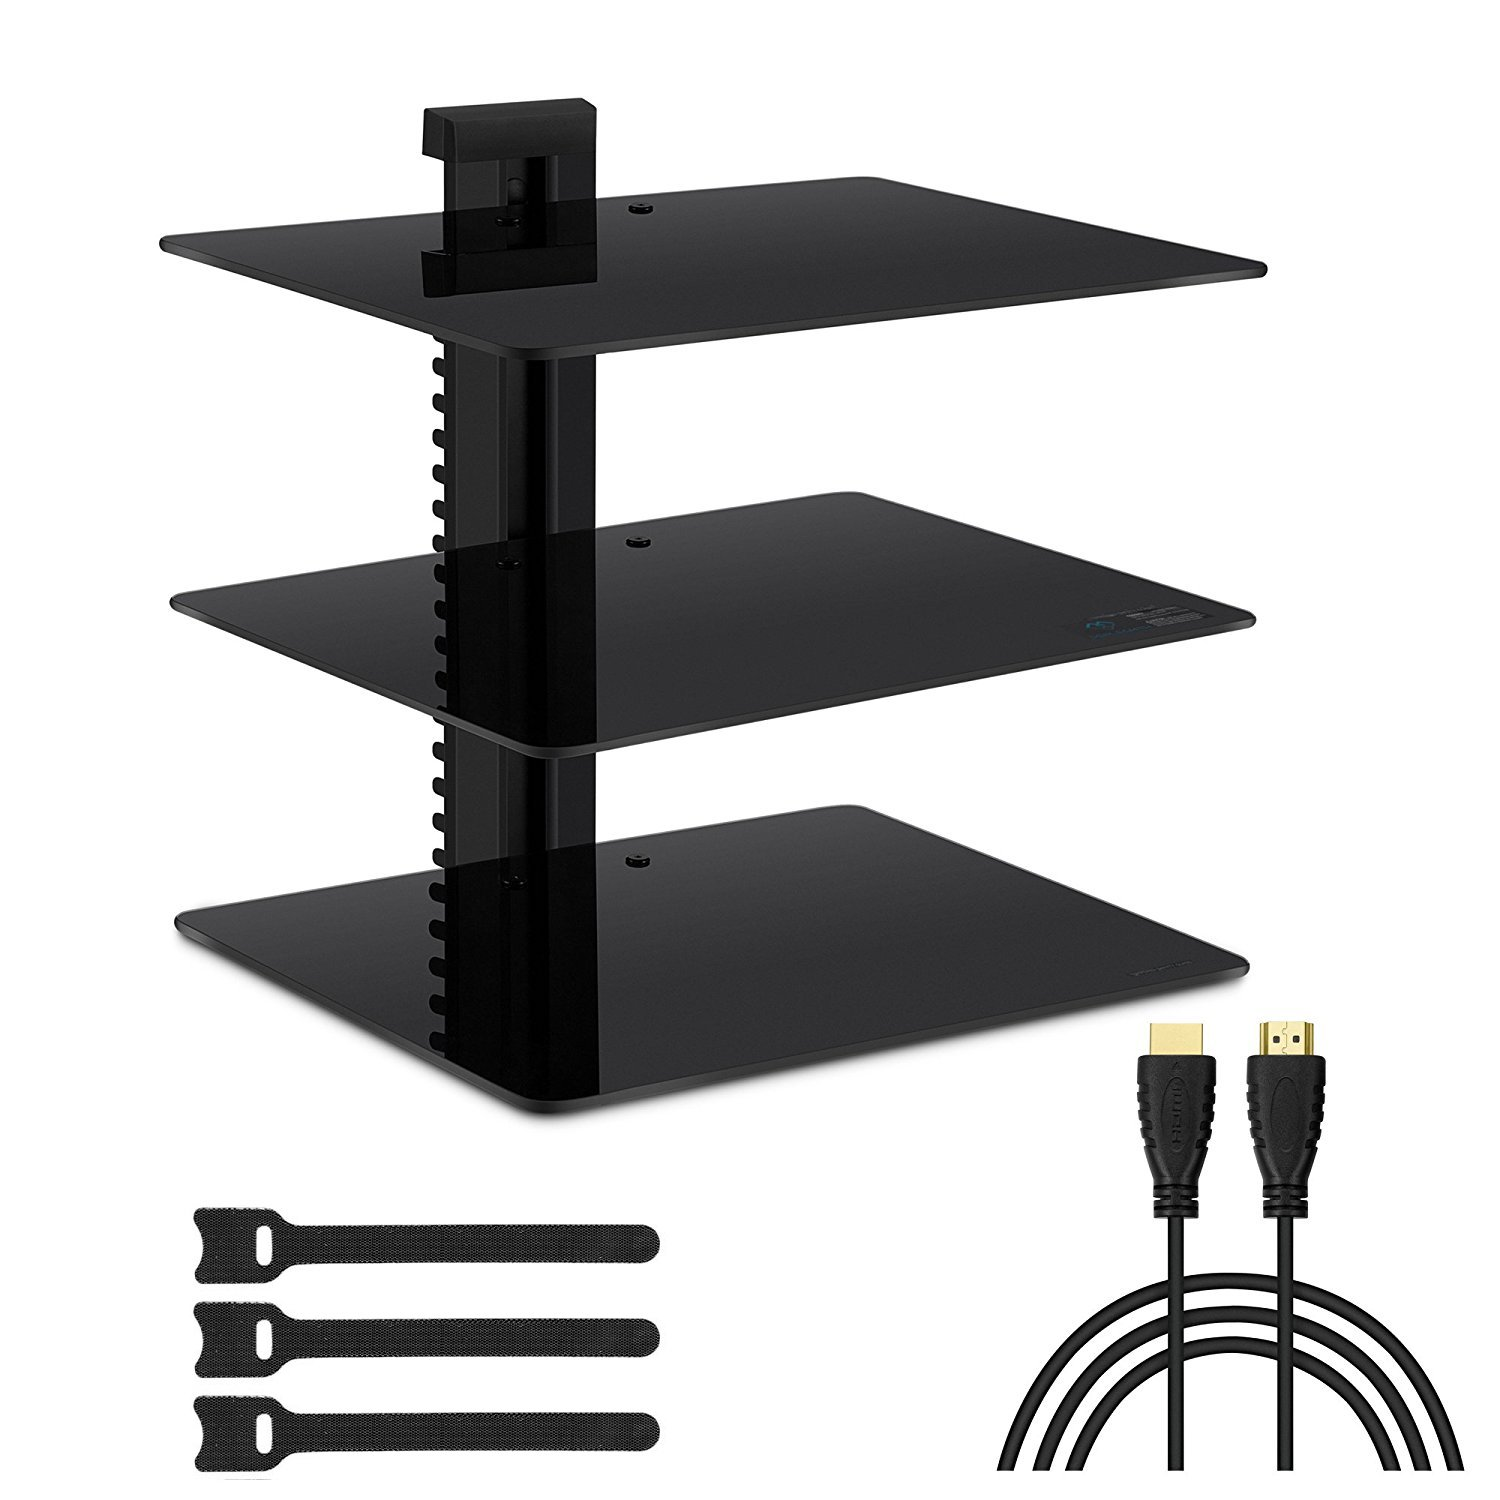 Wall Mount Shelf Bracket 3 Tempered Glass Shelves Floating Cable Box